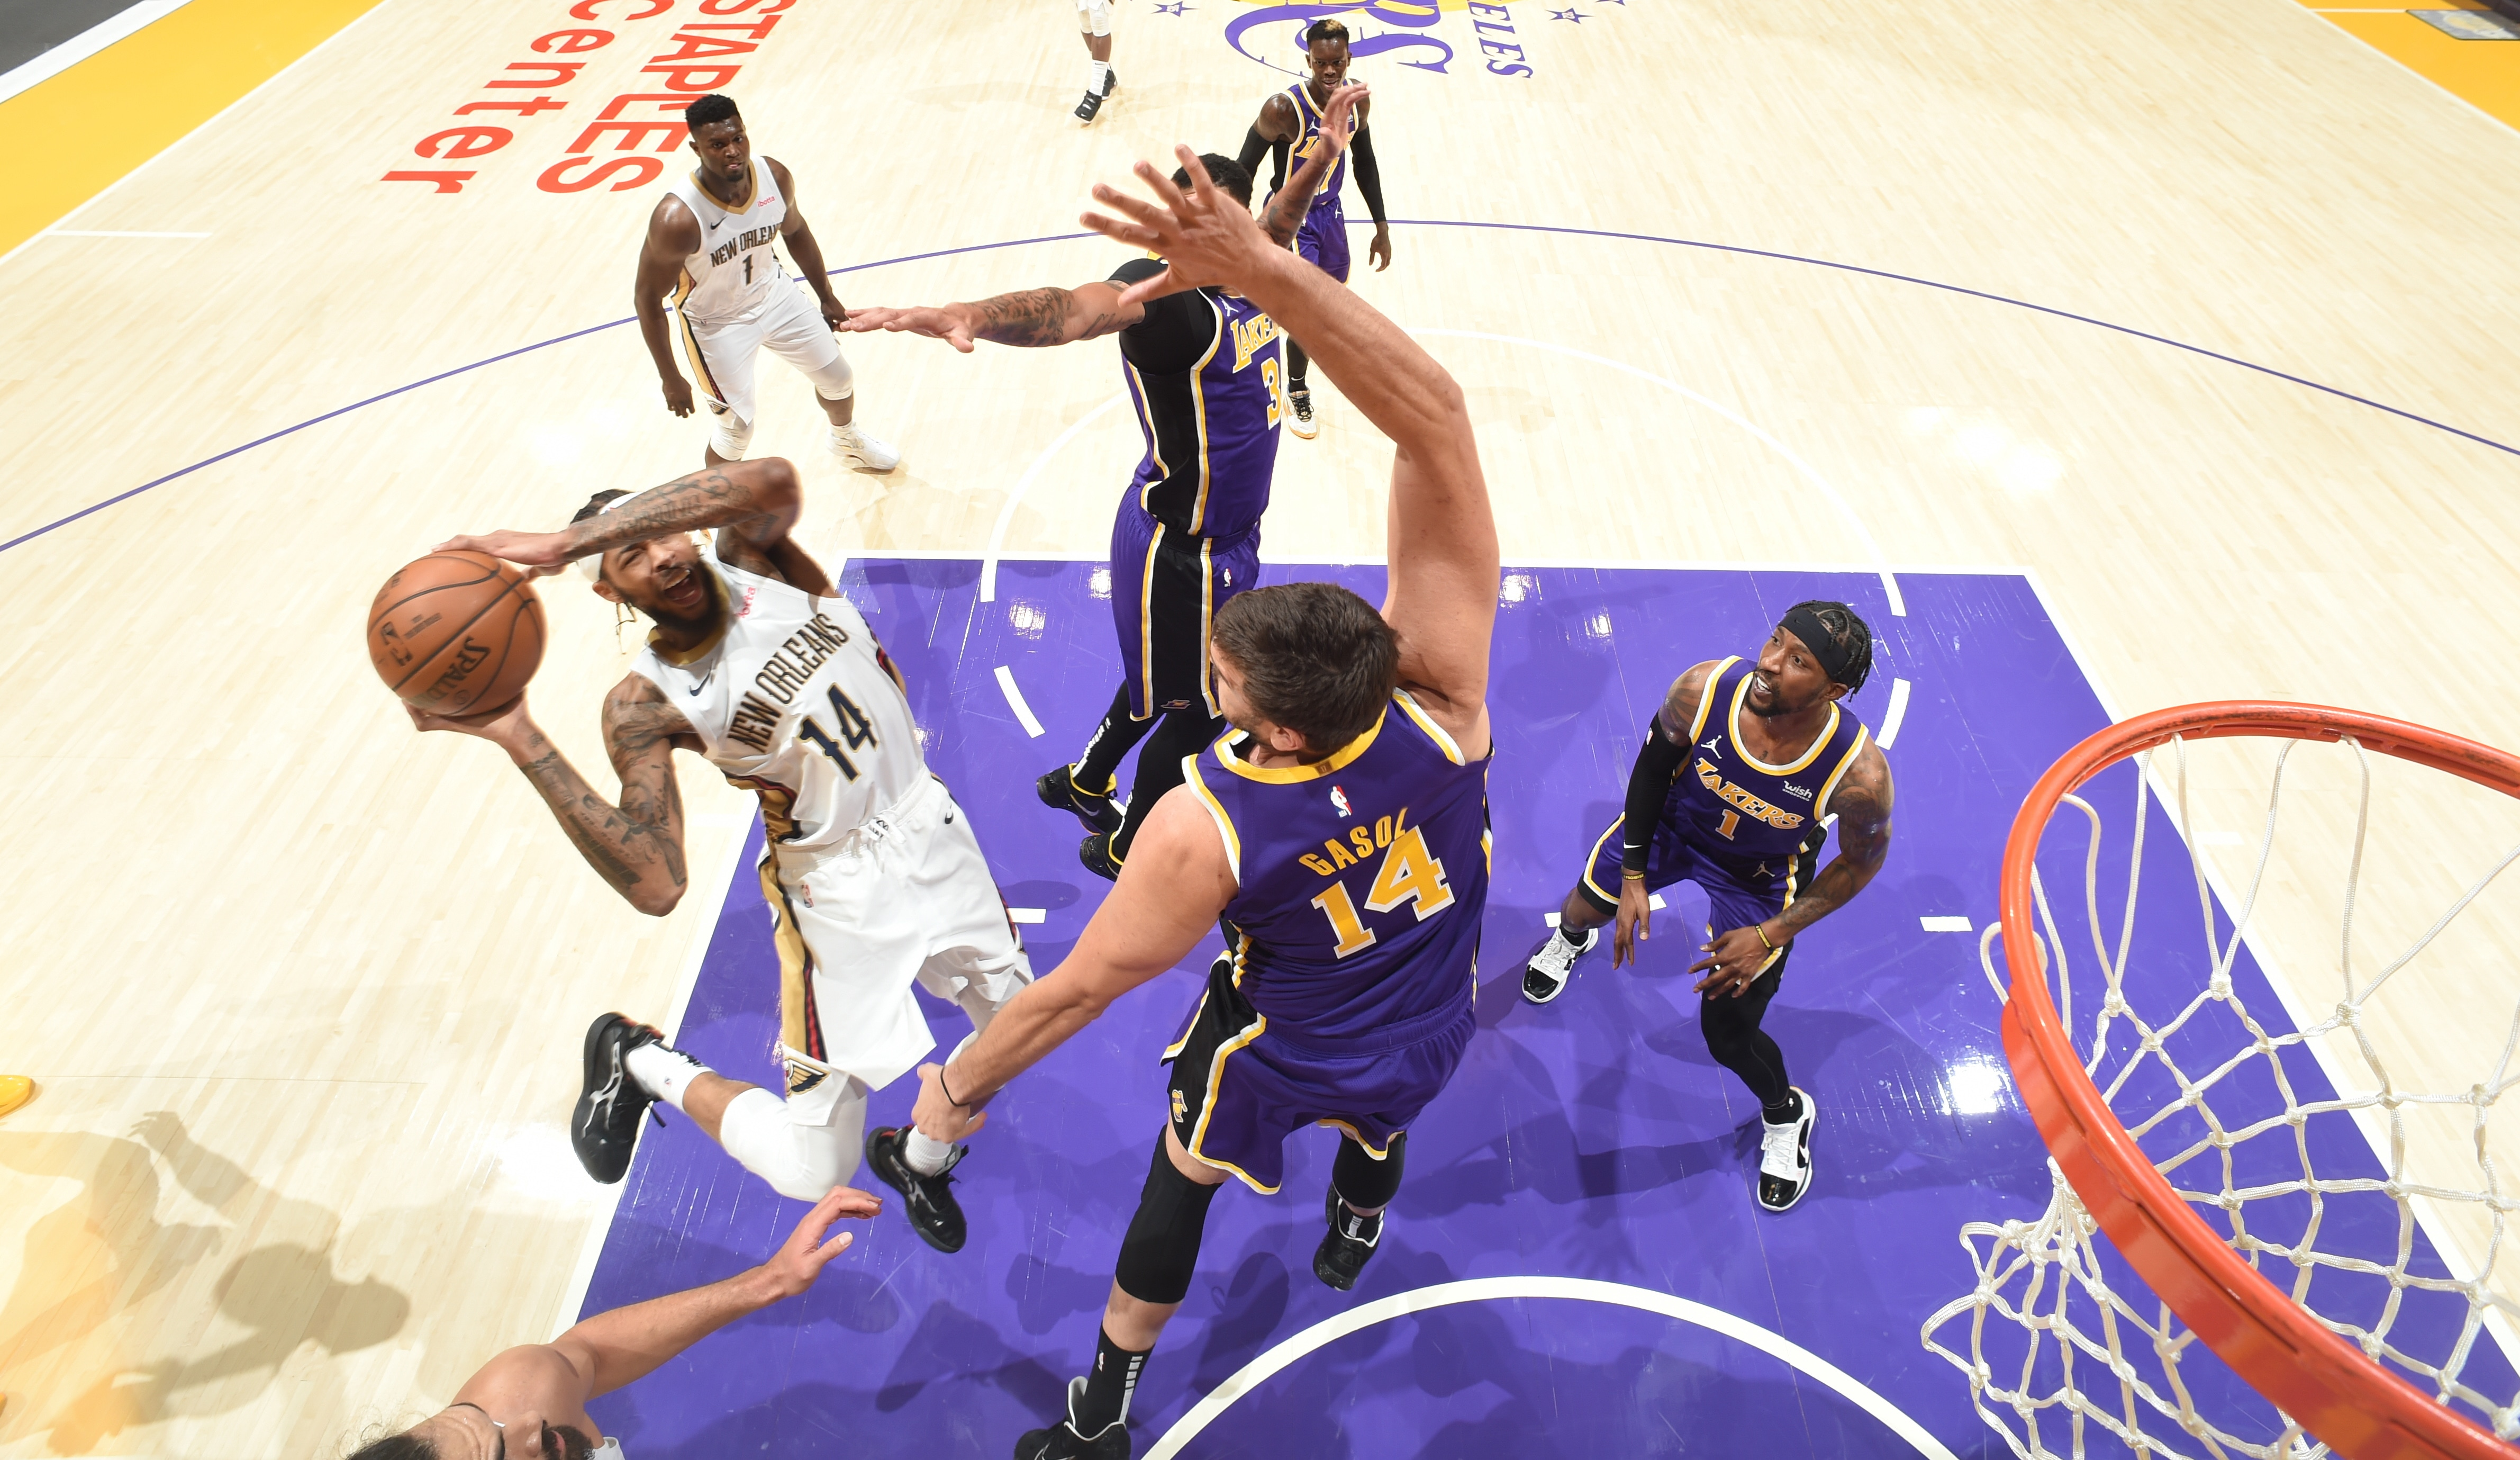 Pelicans vs Lakers Picks, Spread and Prediction